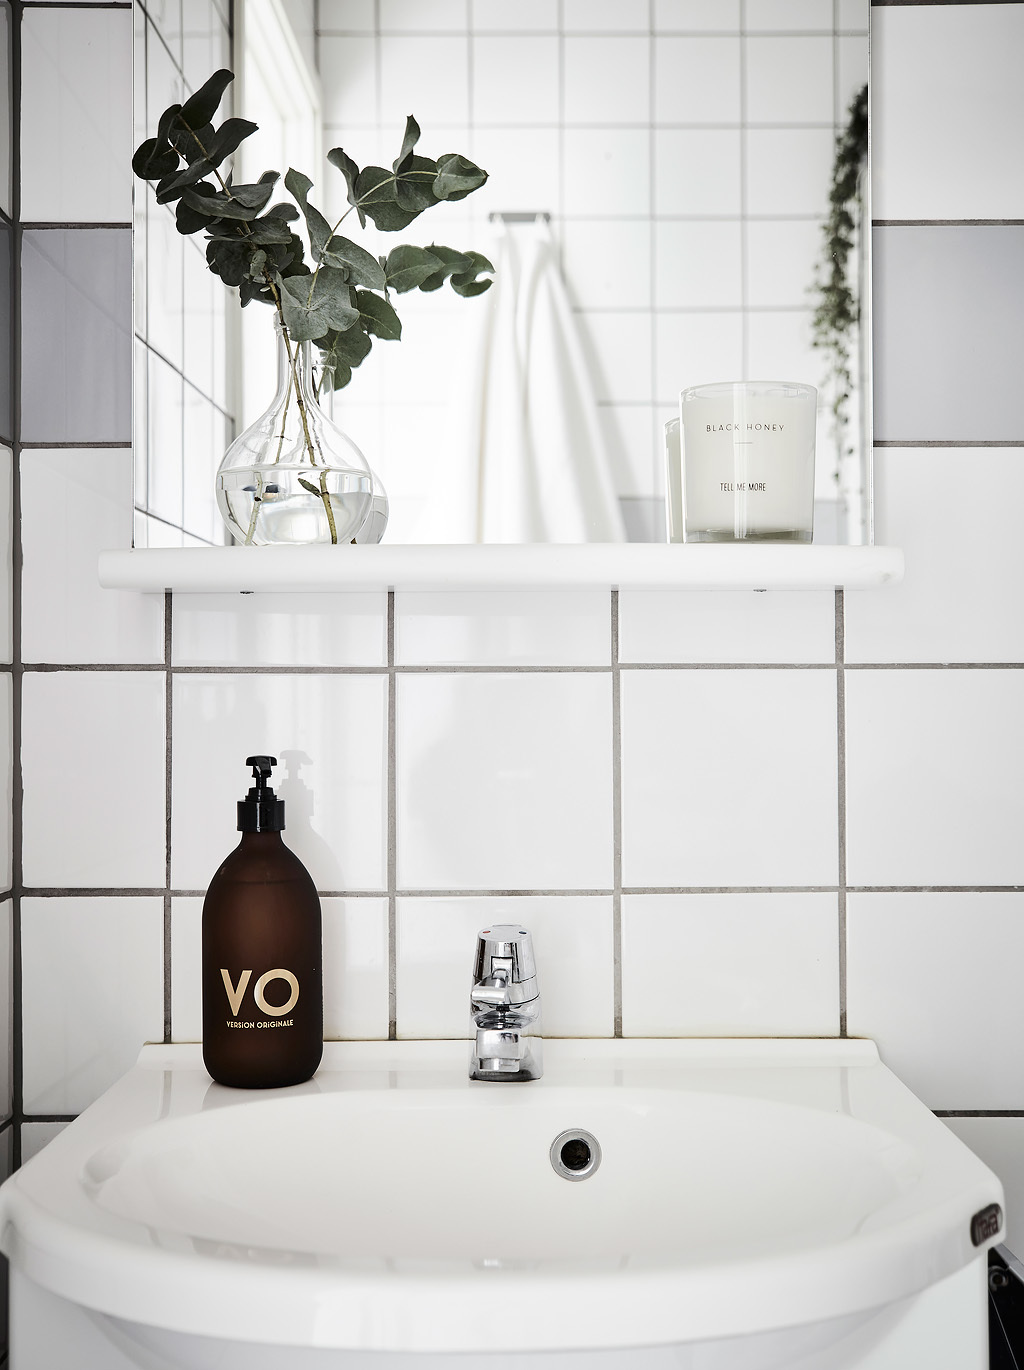 One Stripe Against White Grey Bathroom Tiles - Grey and white interior design inspiration from scandinavia